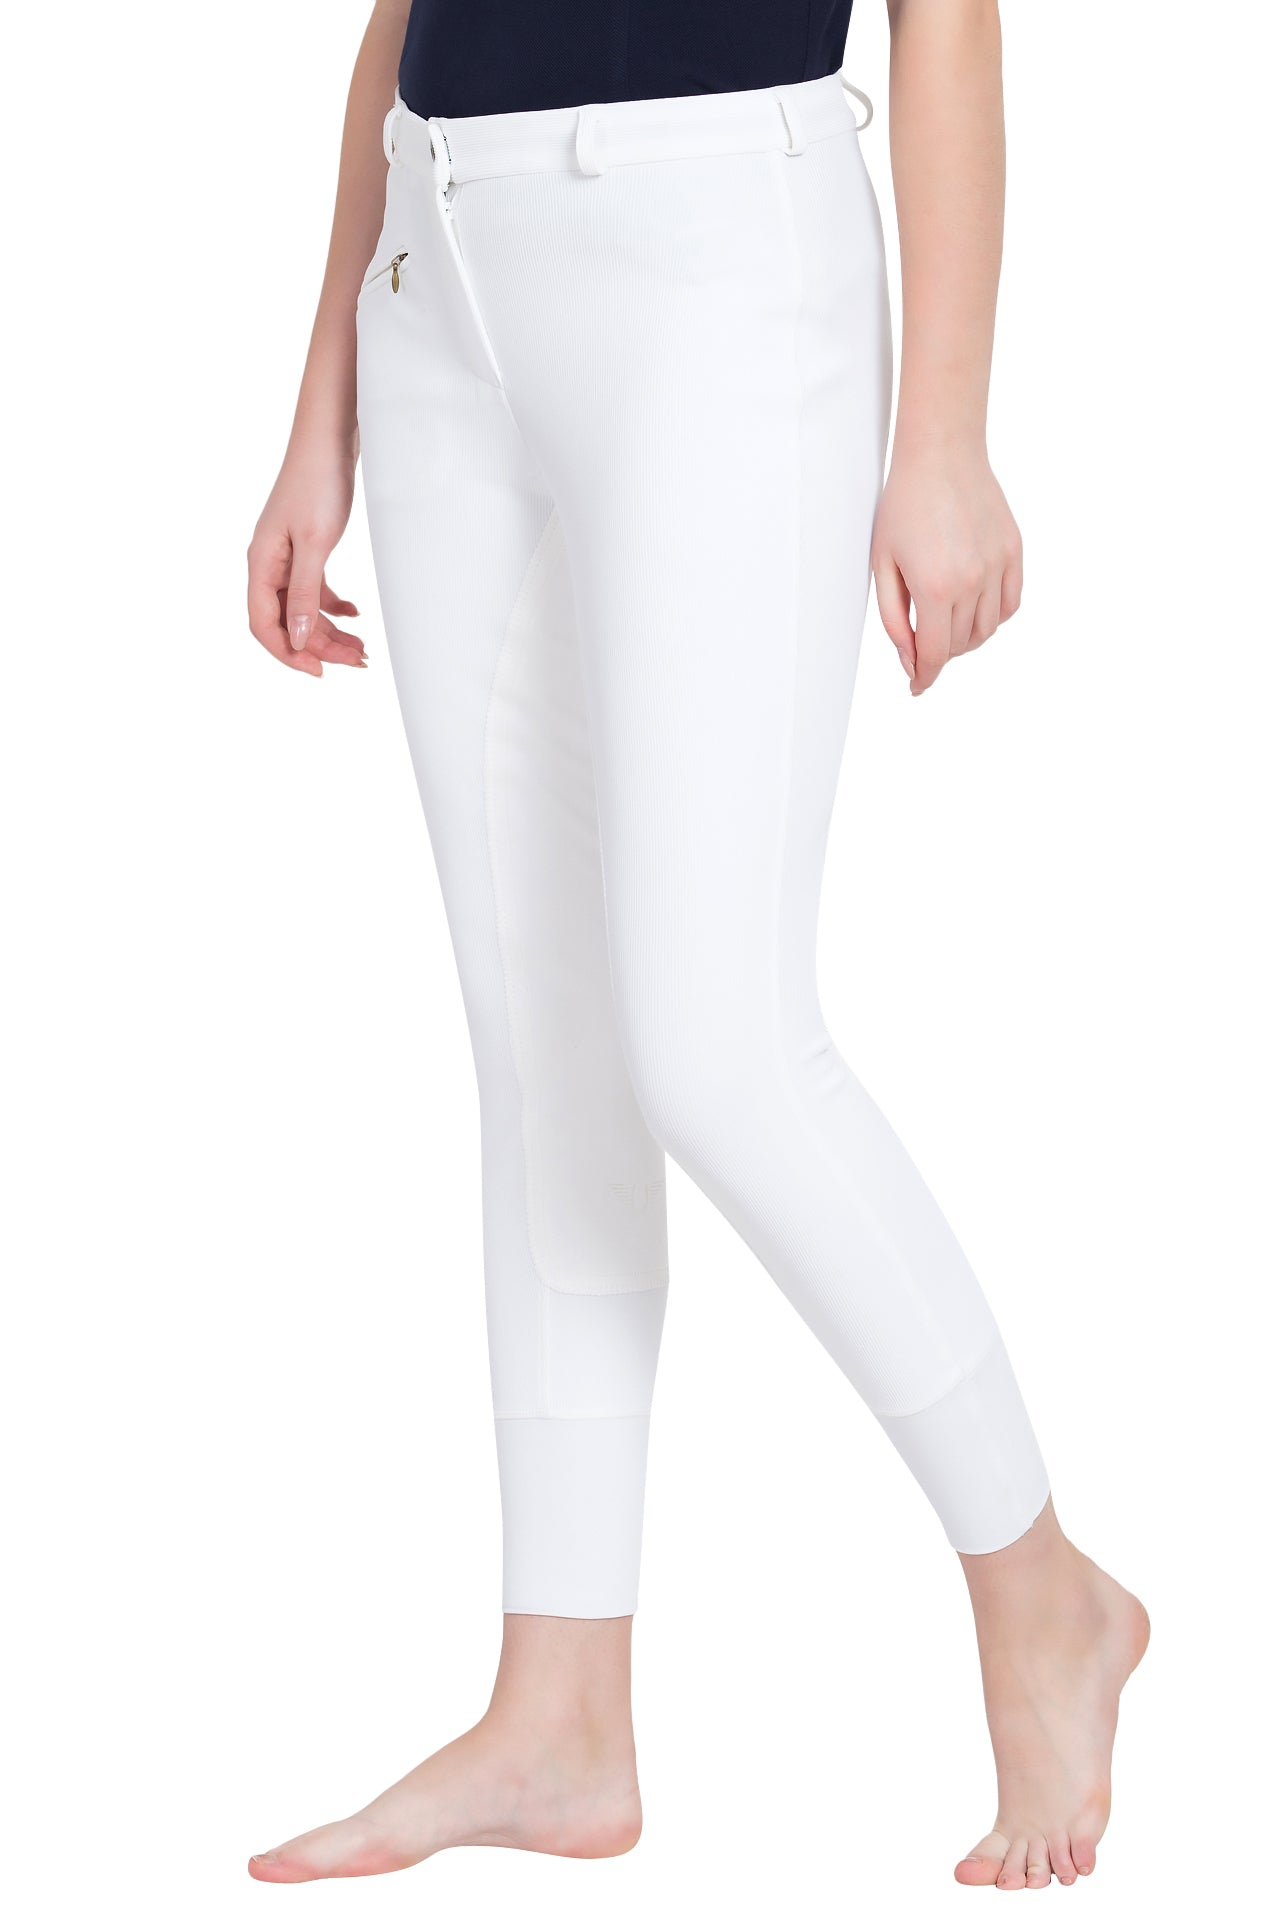 Ladies Ribb Lowrise Full Seat Breeches - TuffRider - Breeches.com